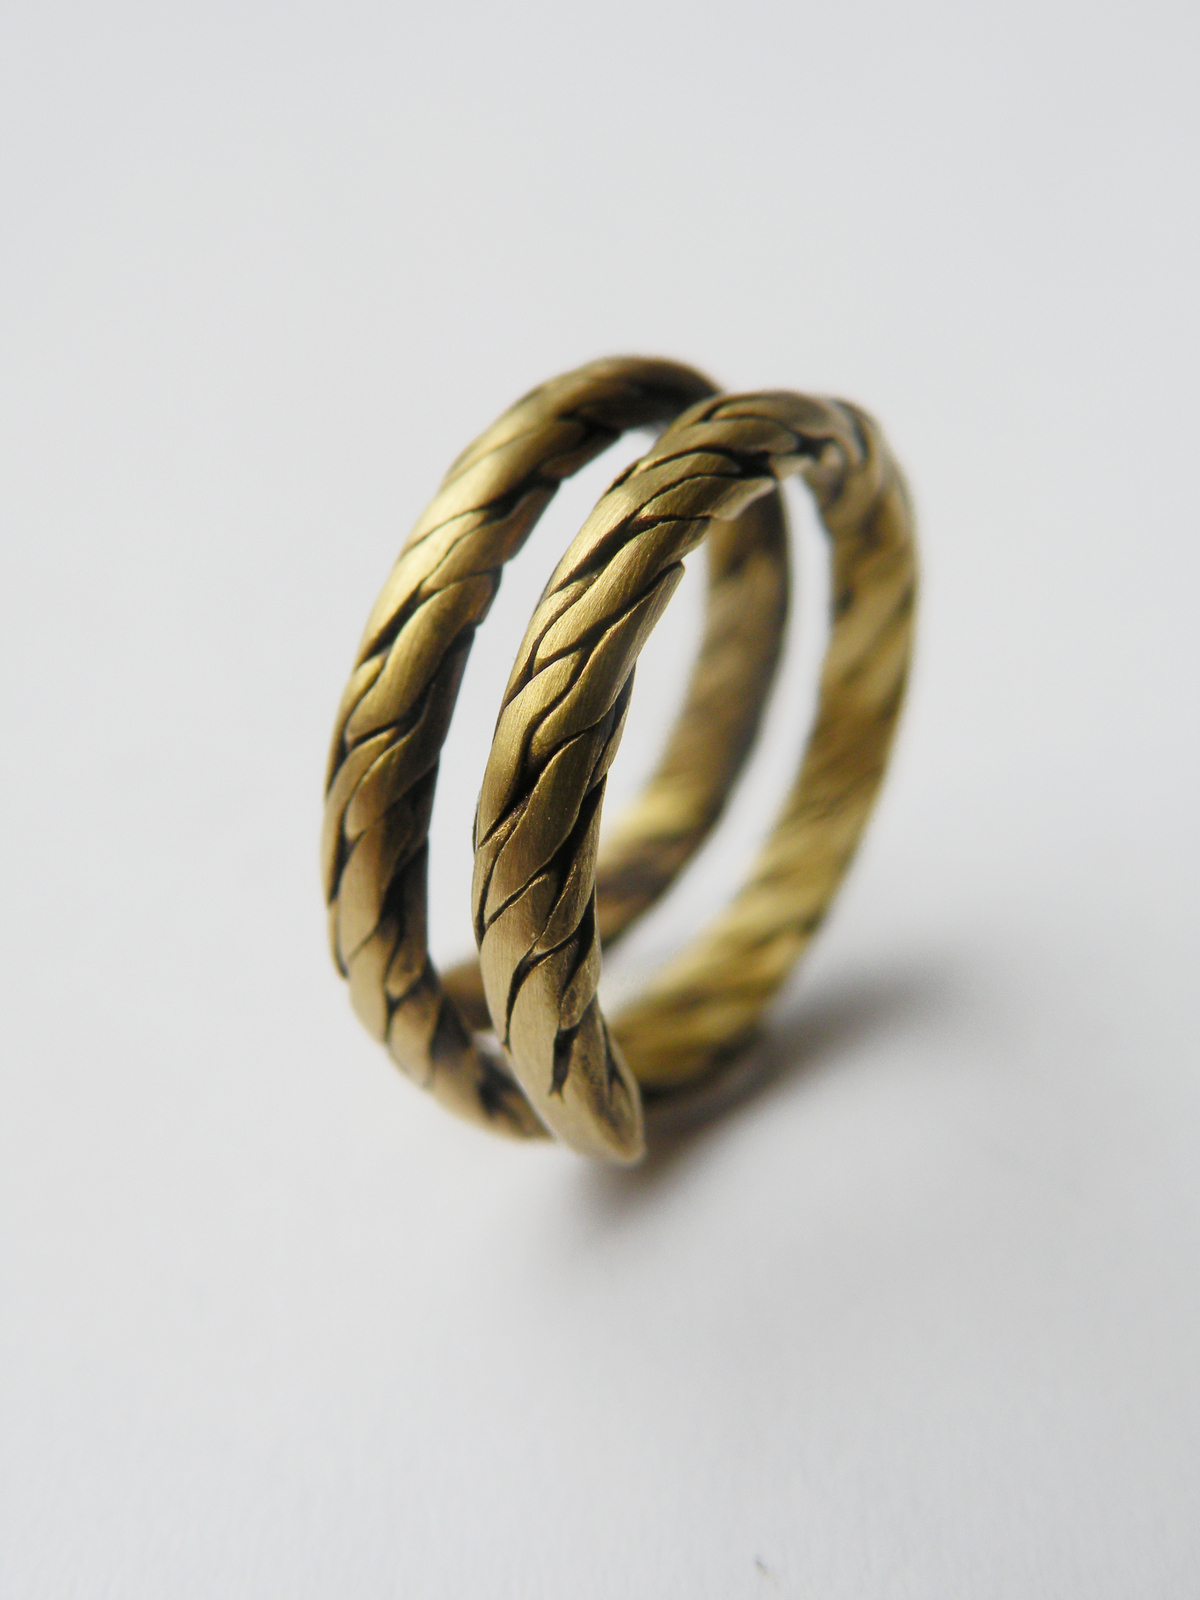 Braided Ring A Braided Ring Braiding Metalwork And Wirework On Cut Out Keep